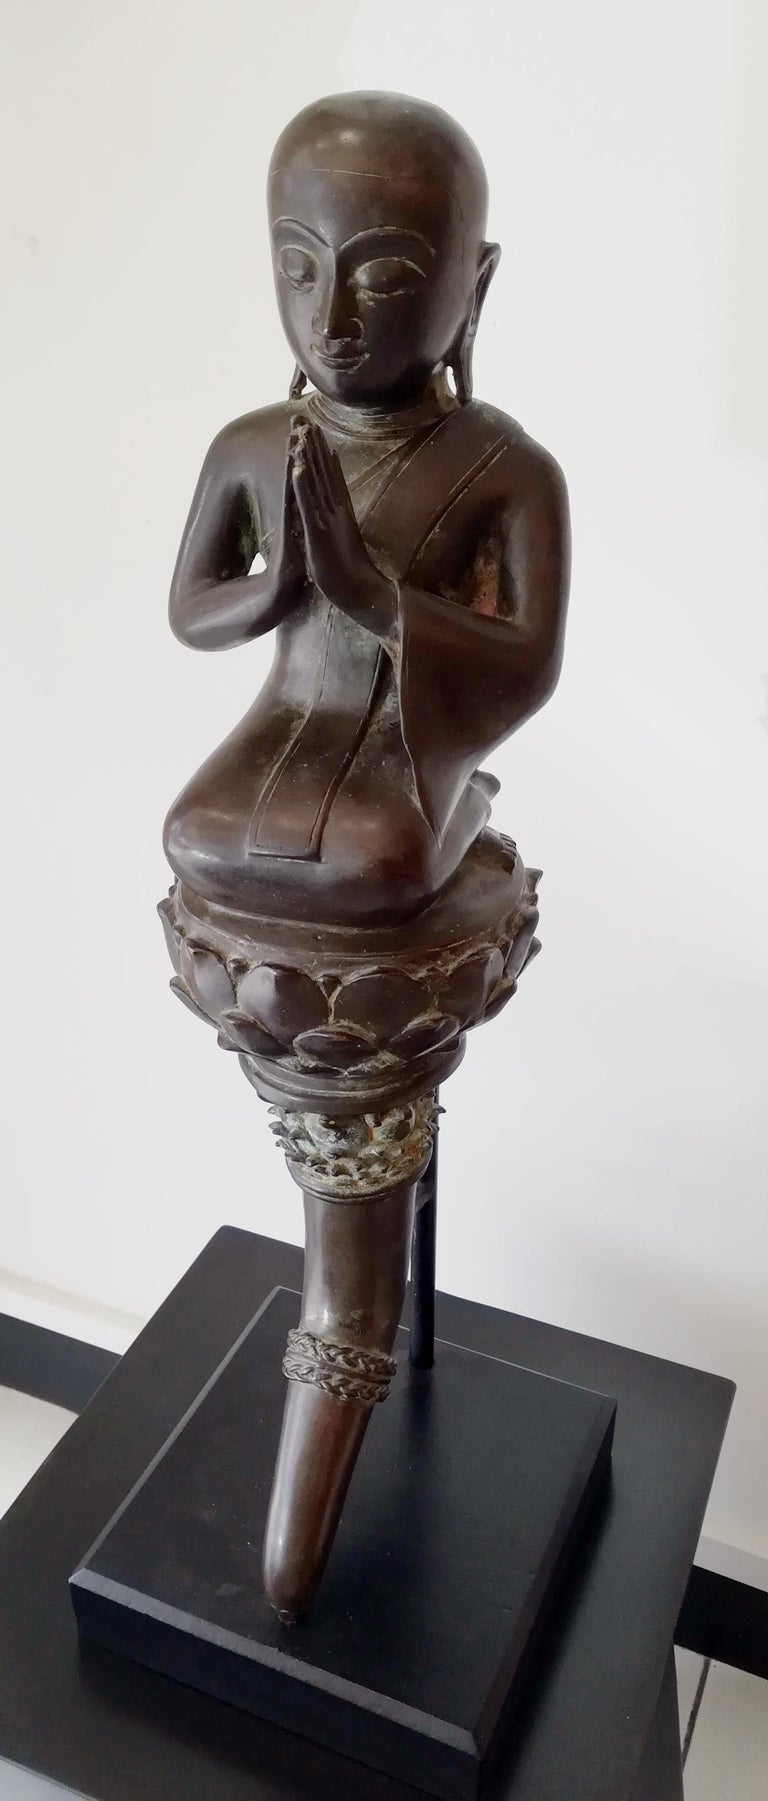 Burmese monk in bronze 18th century, monk seated on a horn decorated with lotus flowers on top, with hands in prayer.